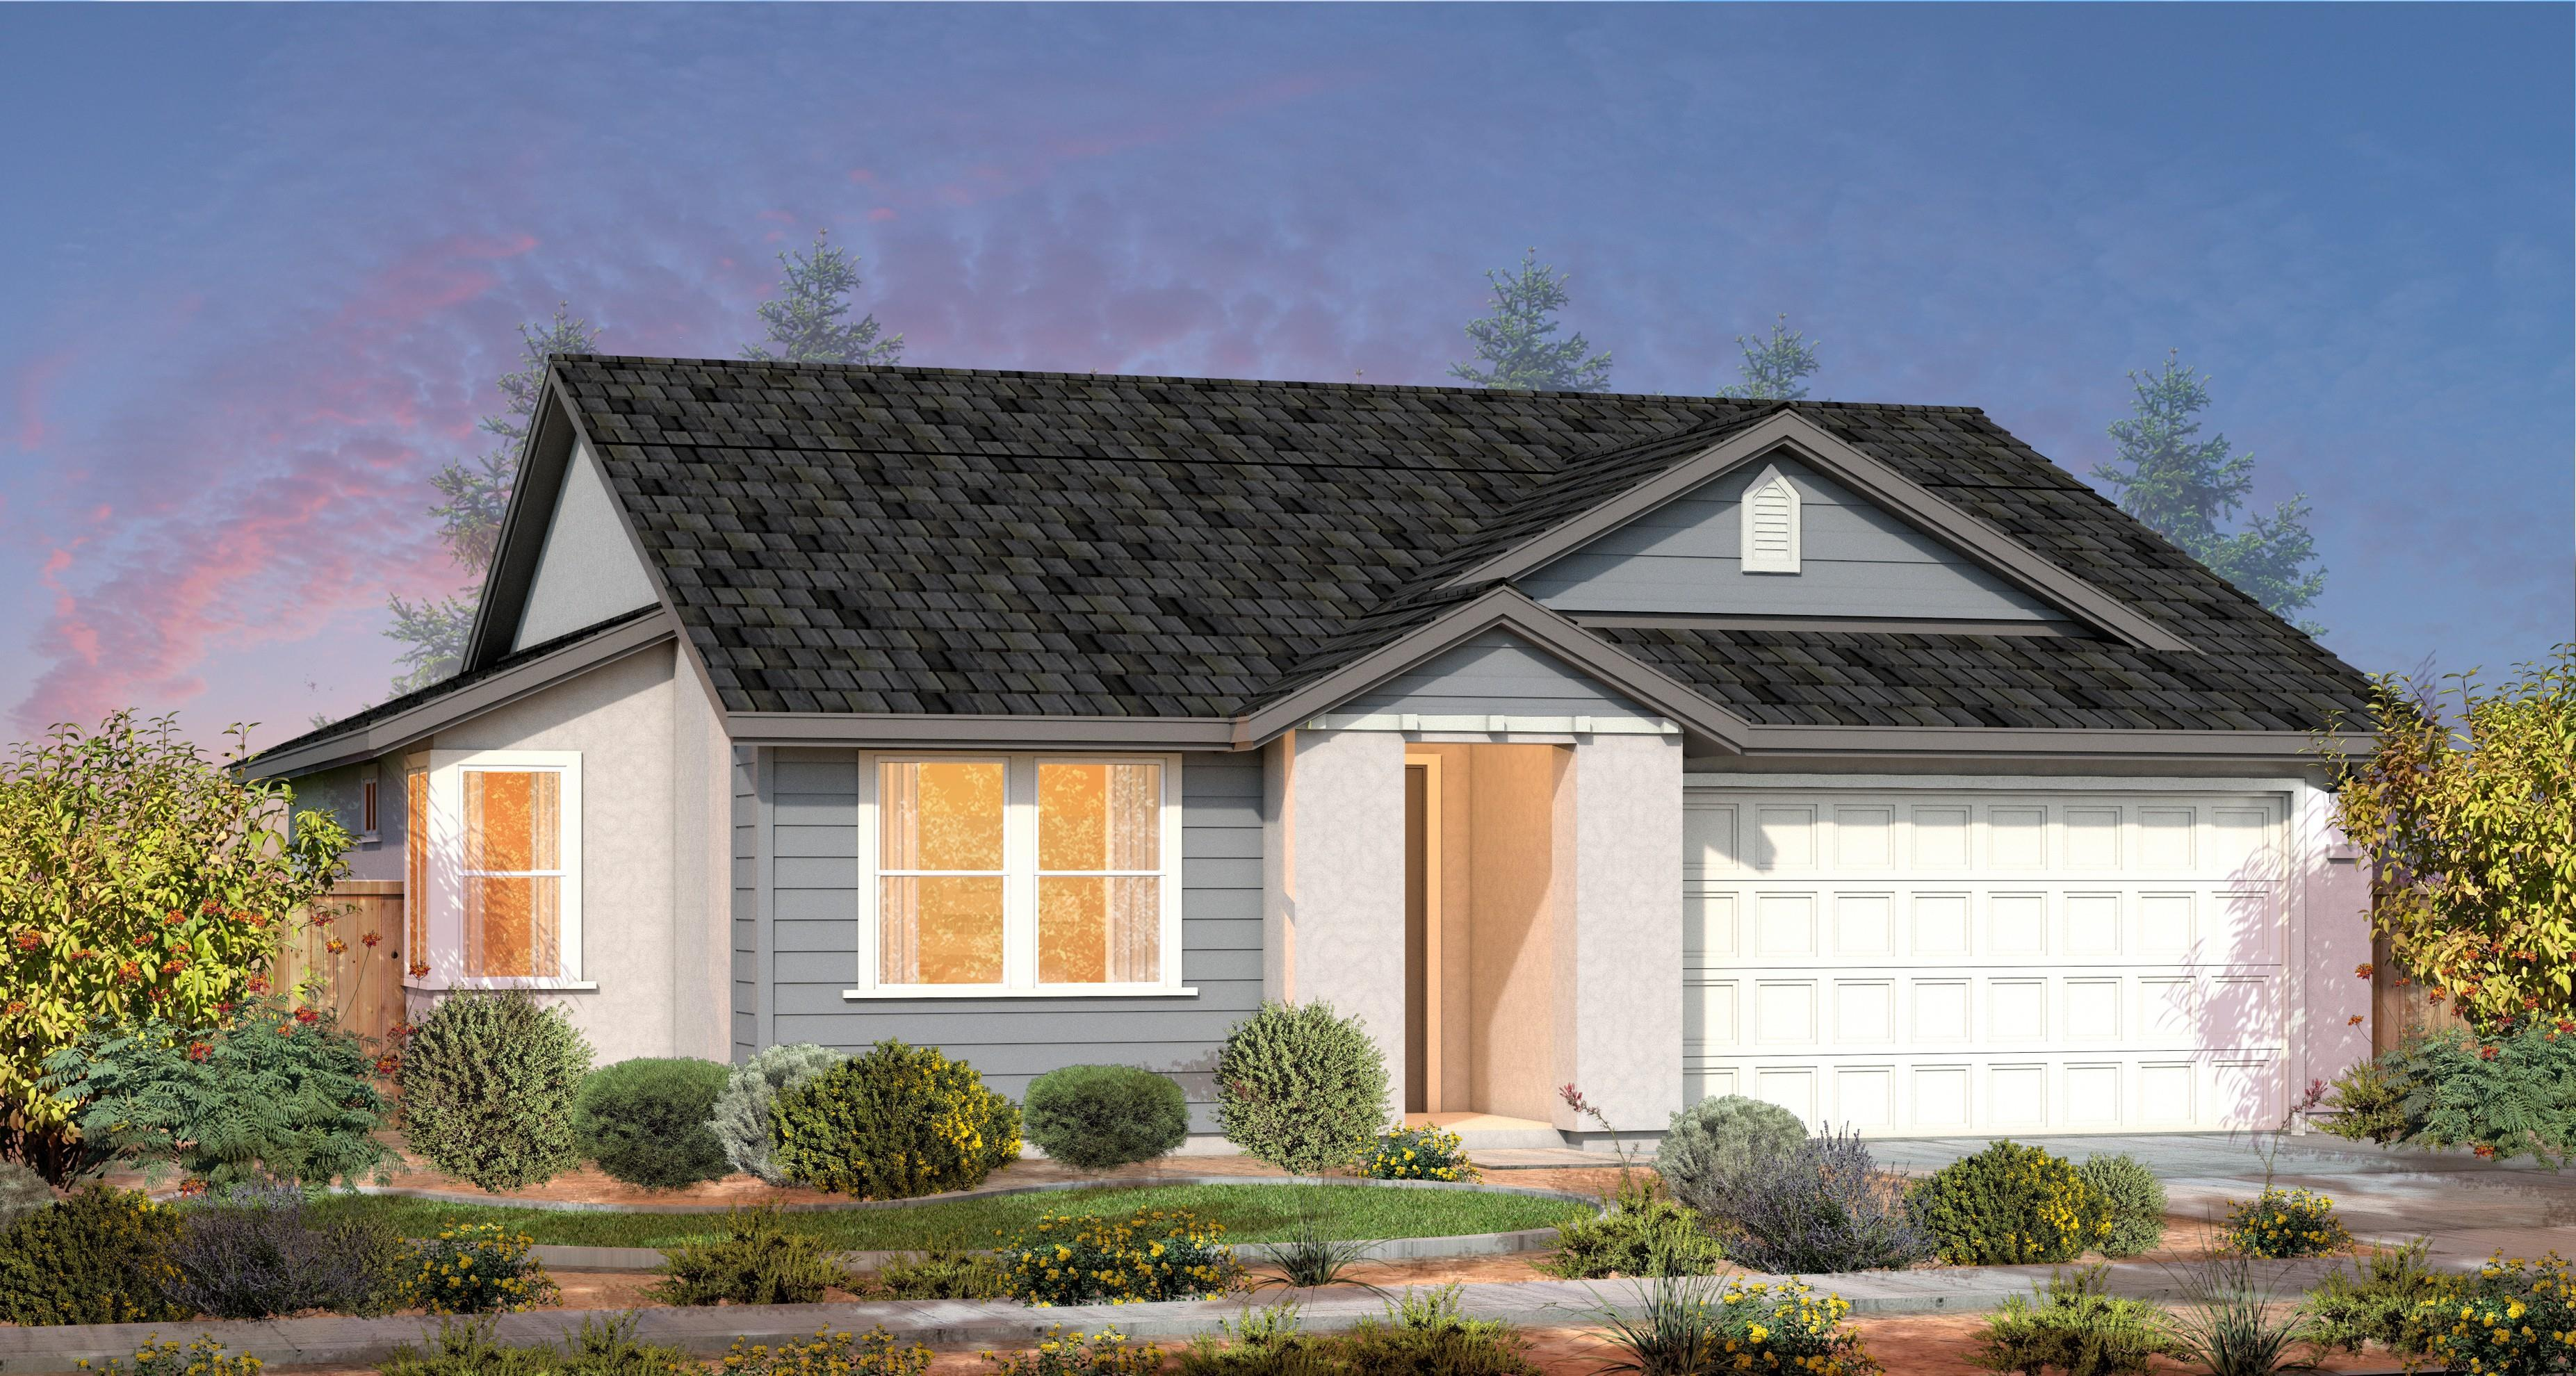 New Construction Homes Plans In Carson City Nv 329 Homes Newhomesource